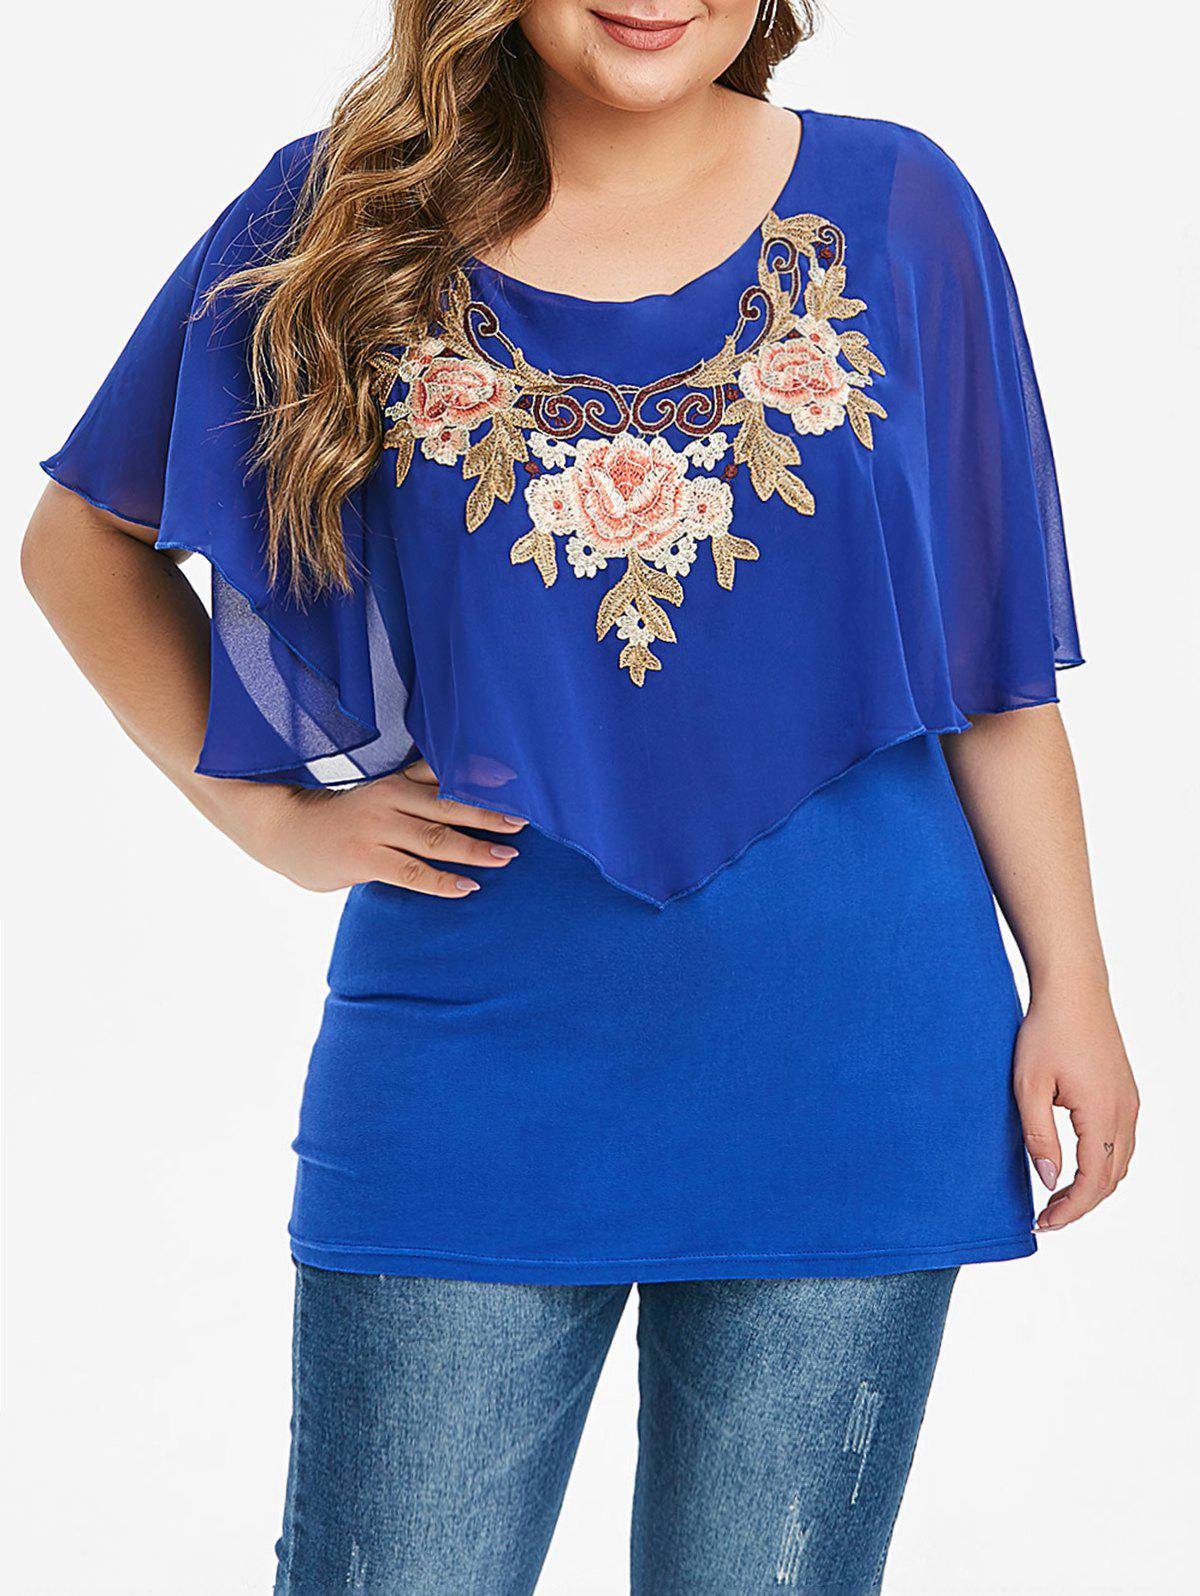 Online Overlay Chiffon Panel Floral Embroidered Plus Size Blouse